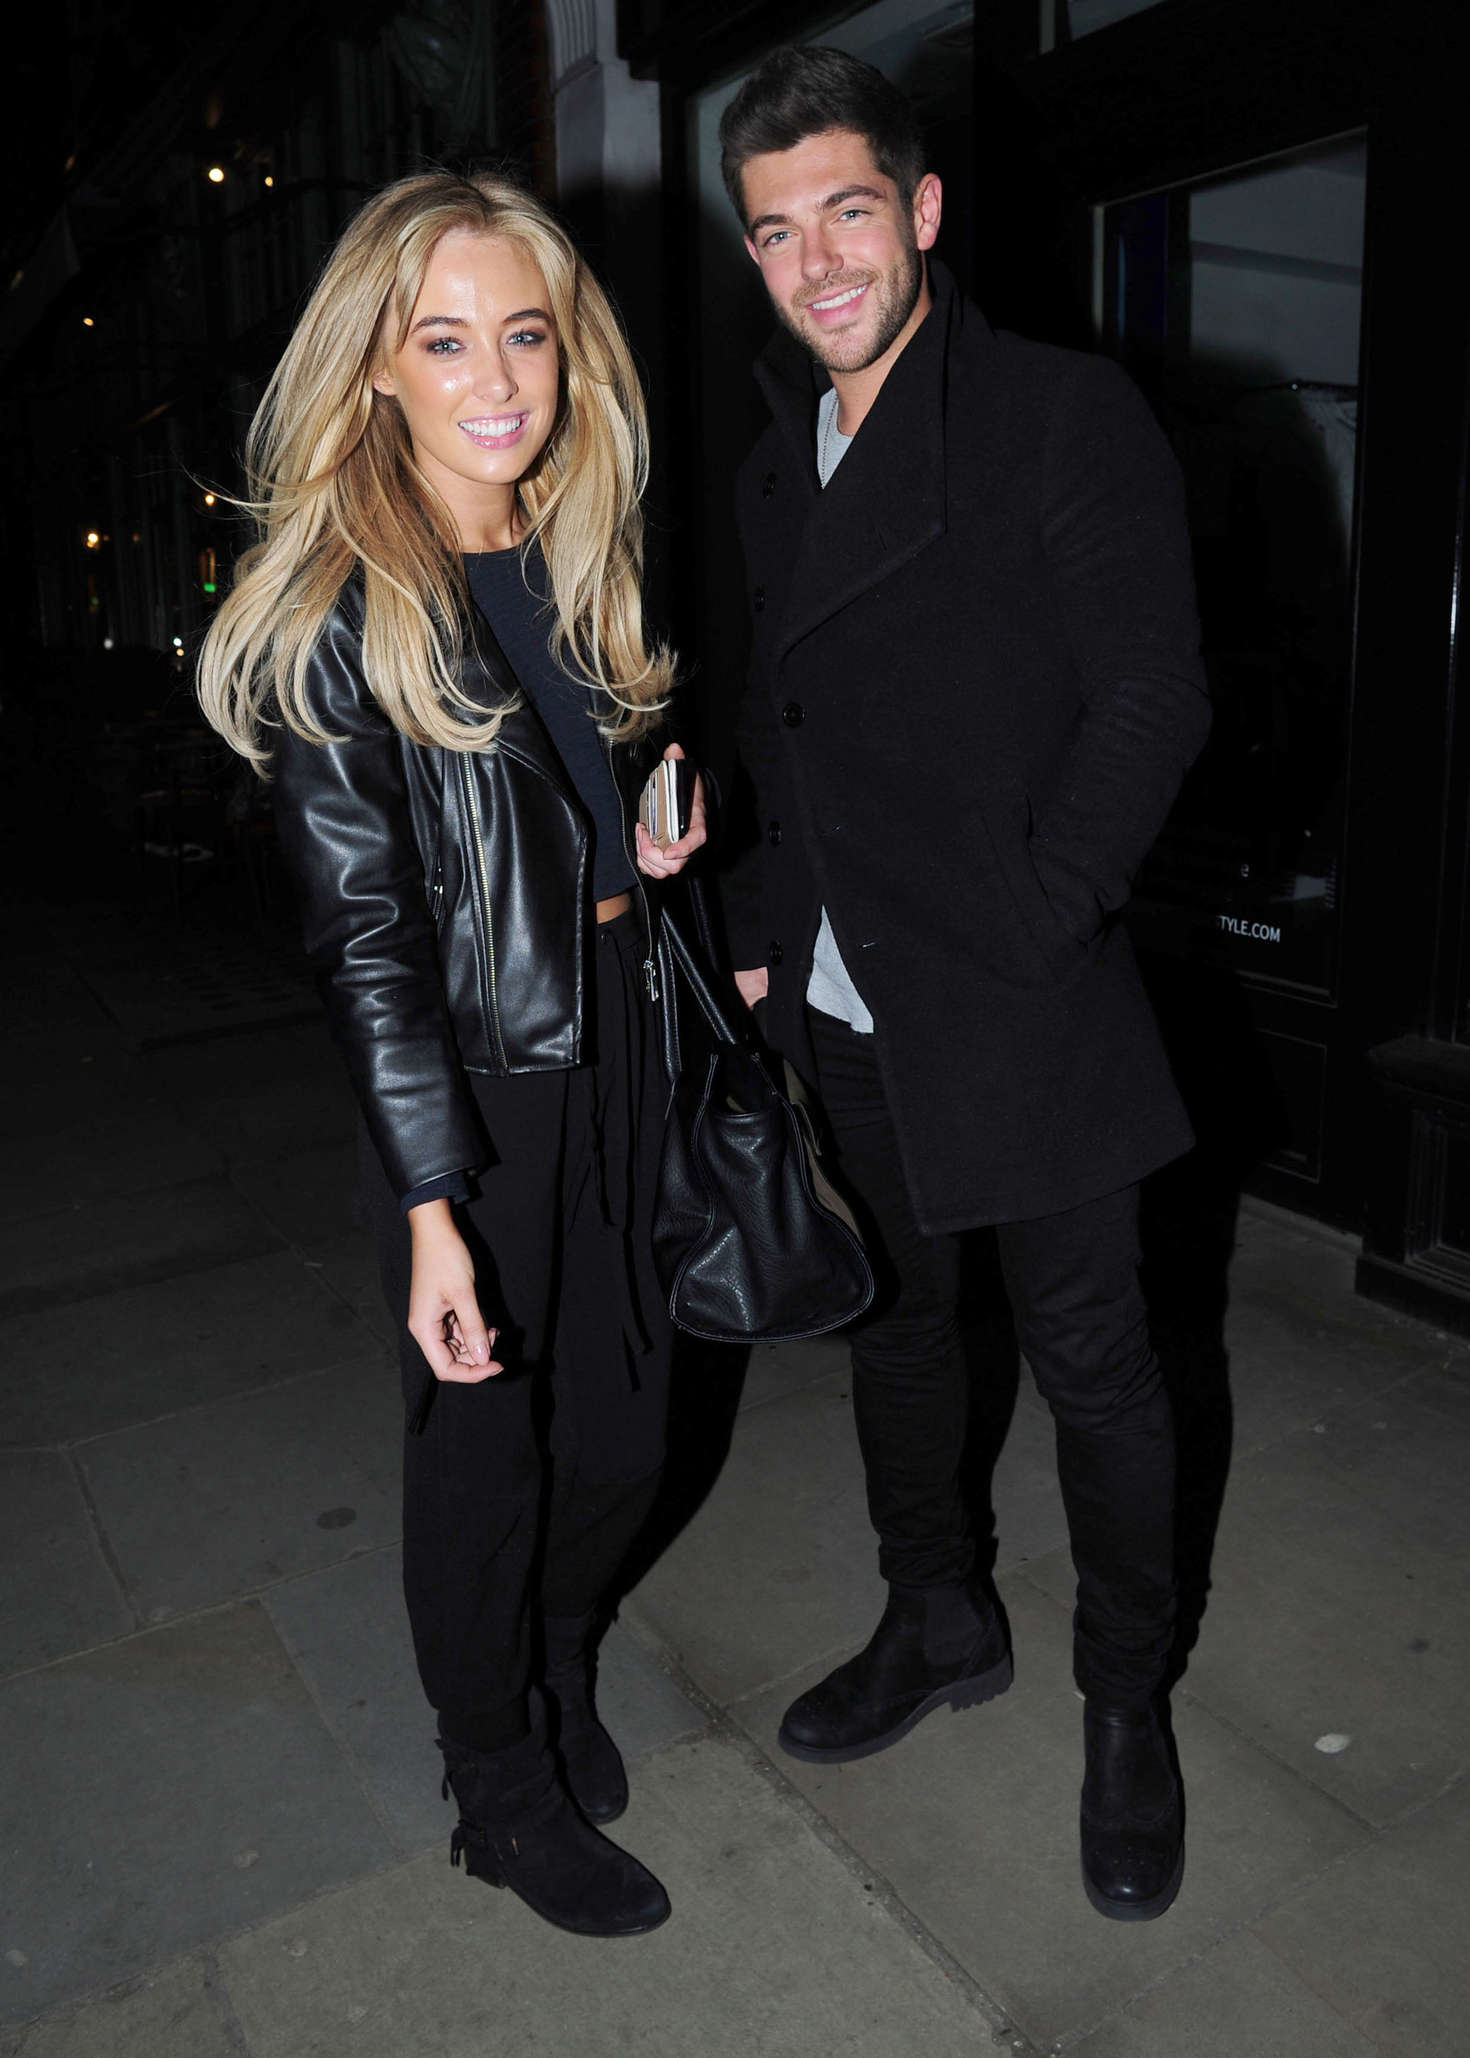 Nicola Hughes Night out at The Ivy Garden Restaurant in Chelsea